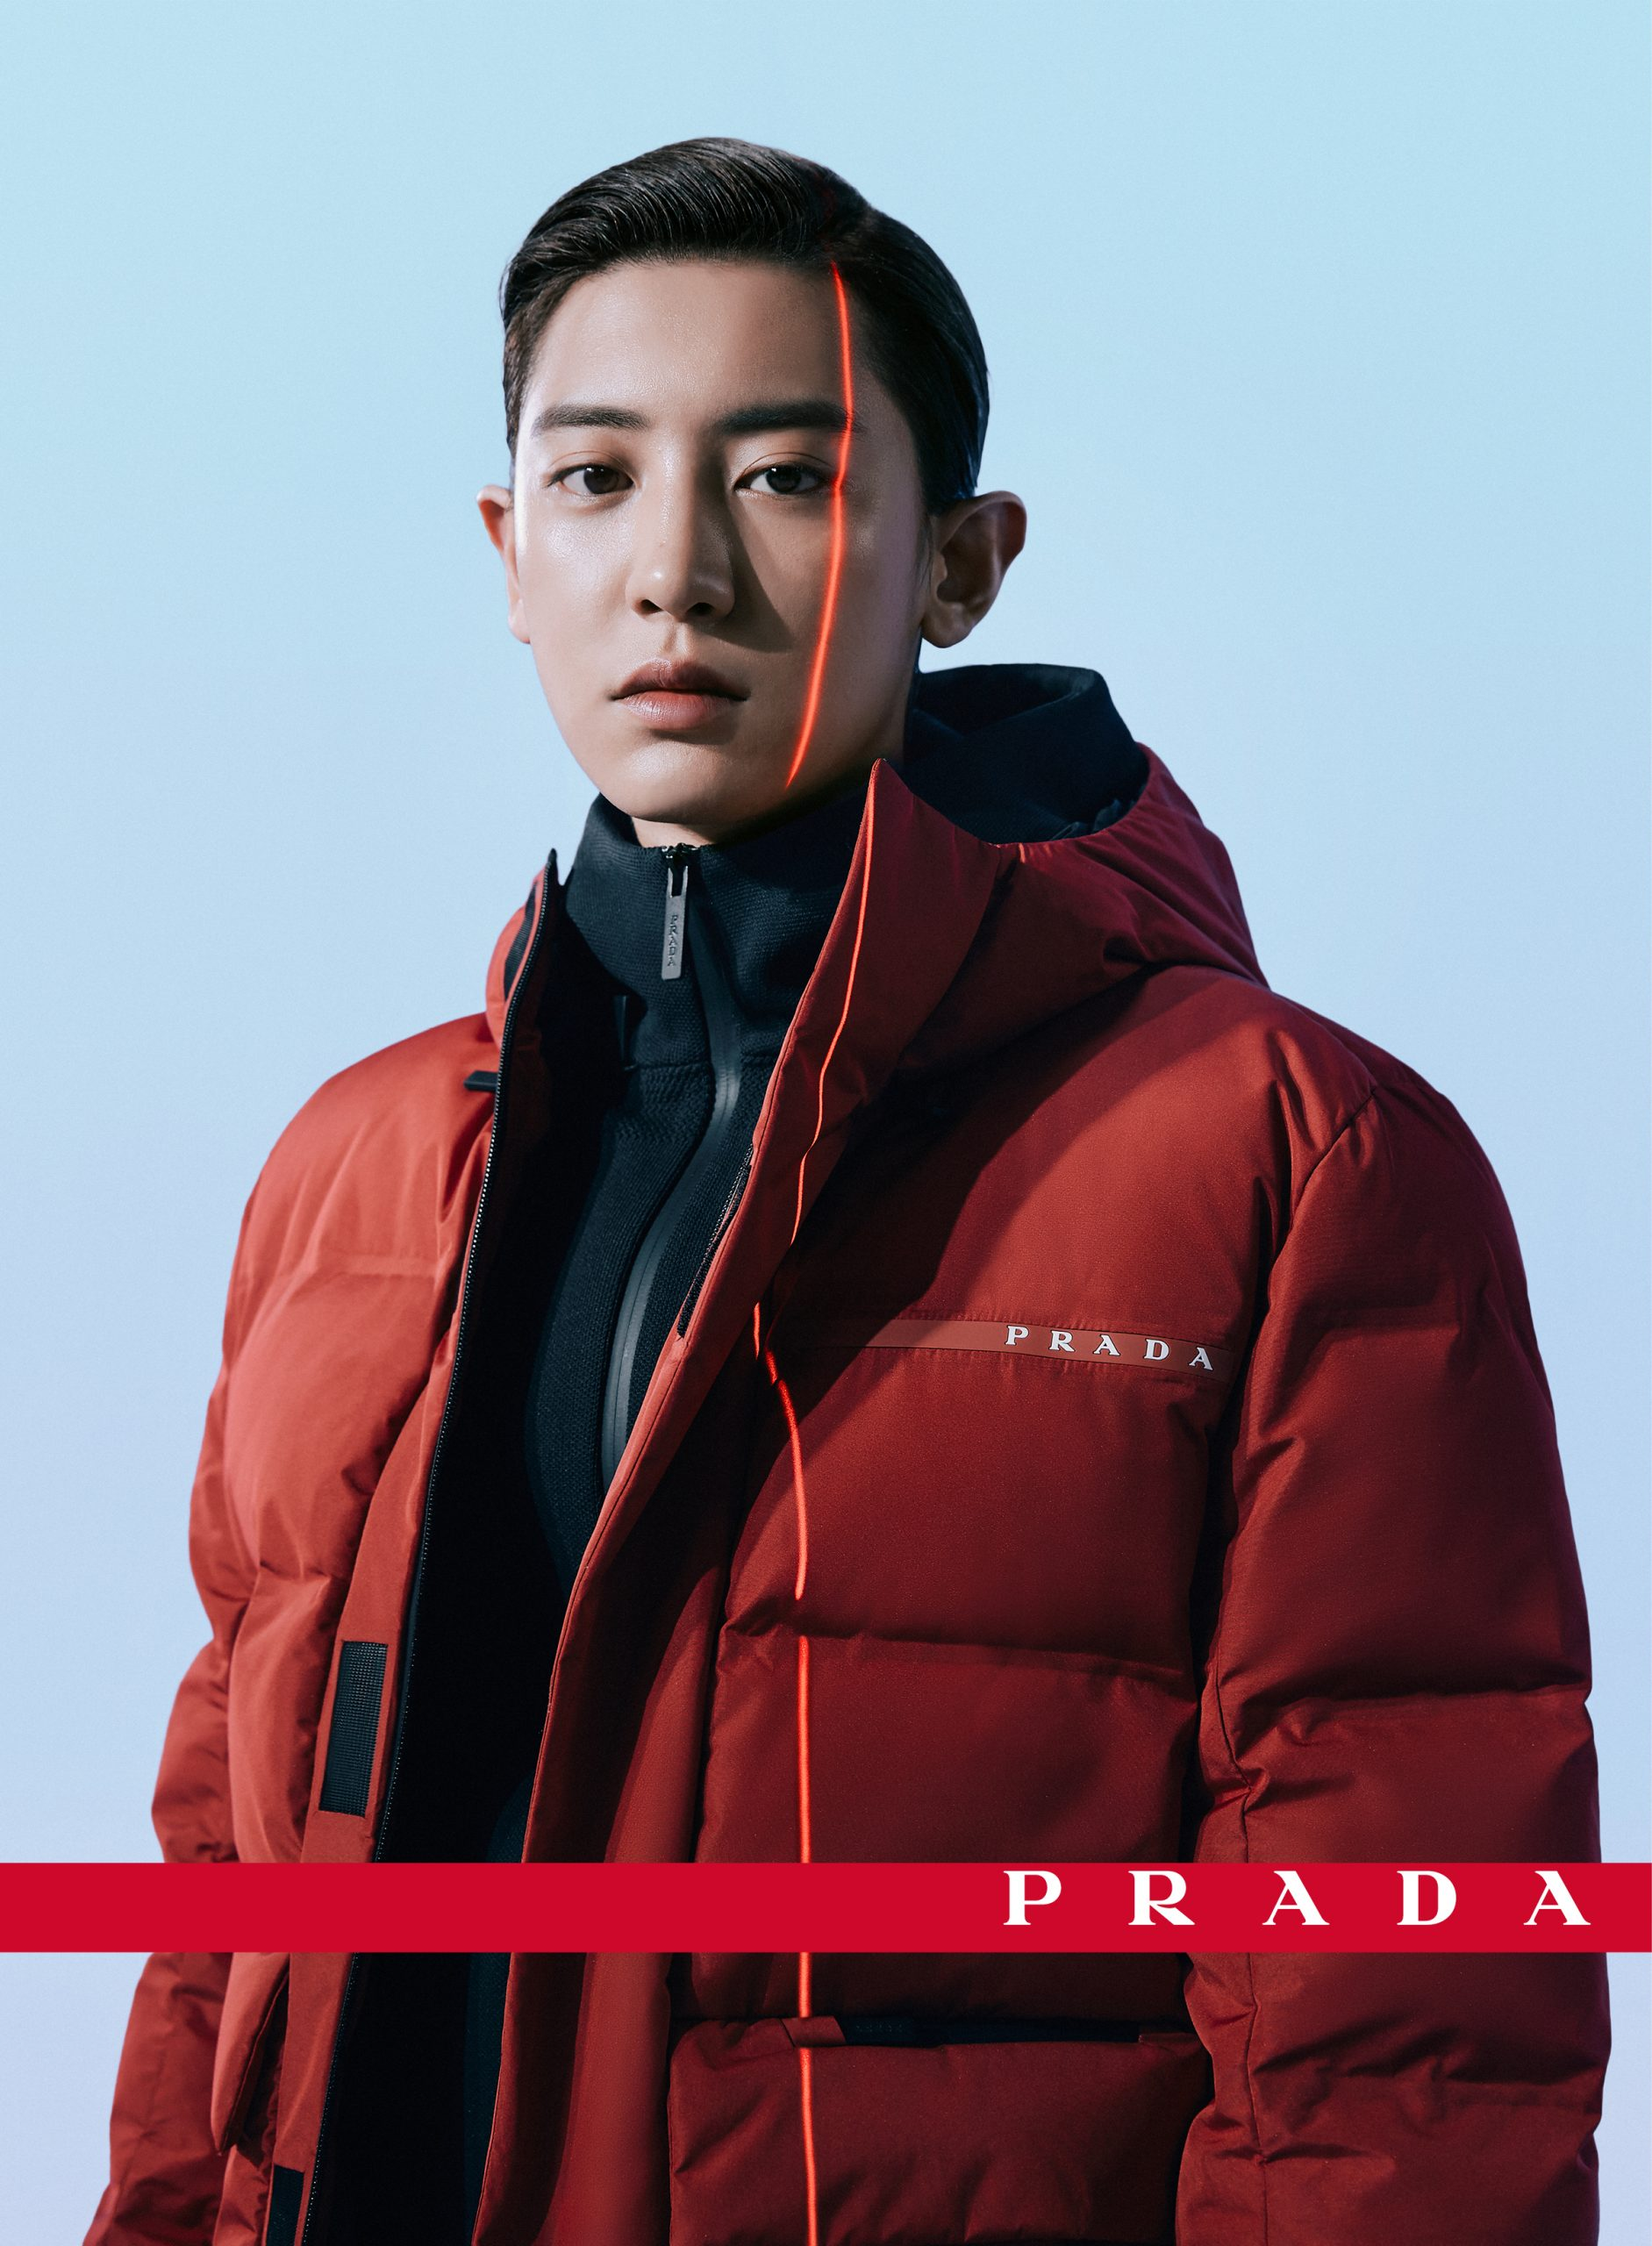 Prada Linea Rossa Fall 2020 Ad Campaign Film & Photos